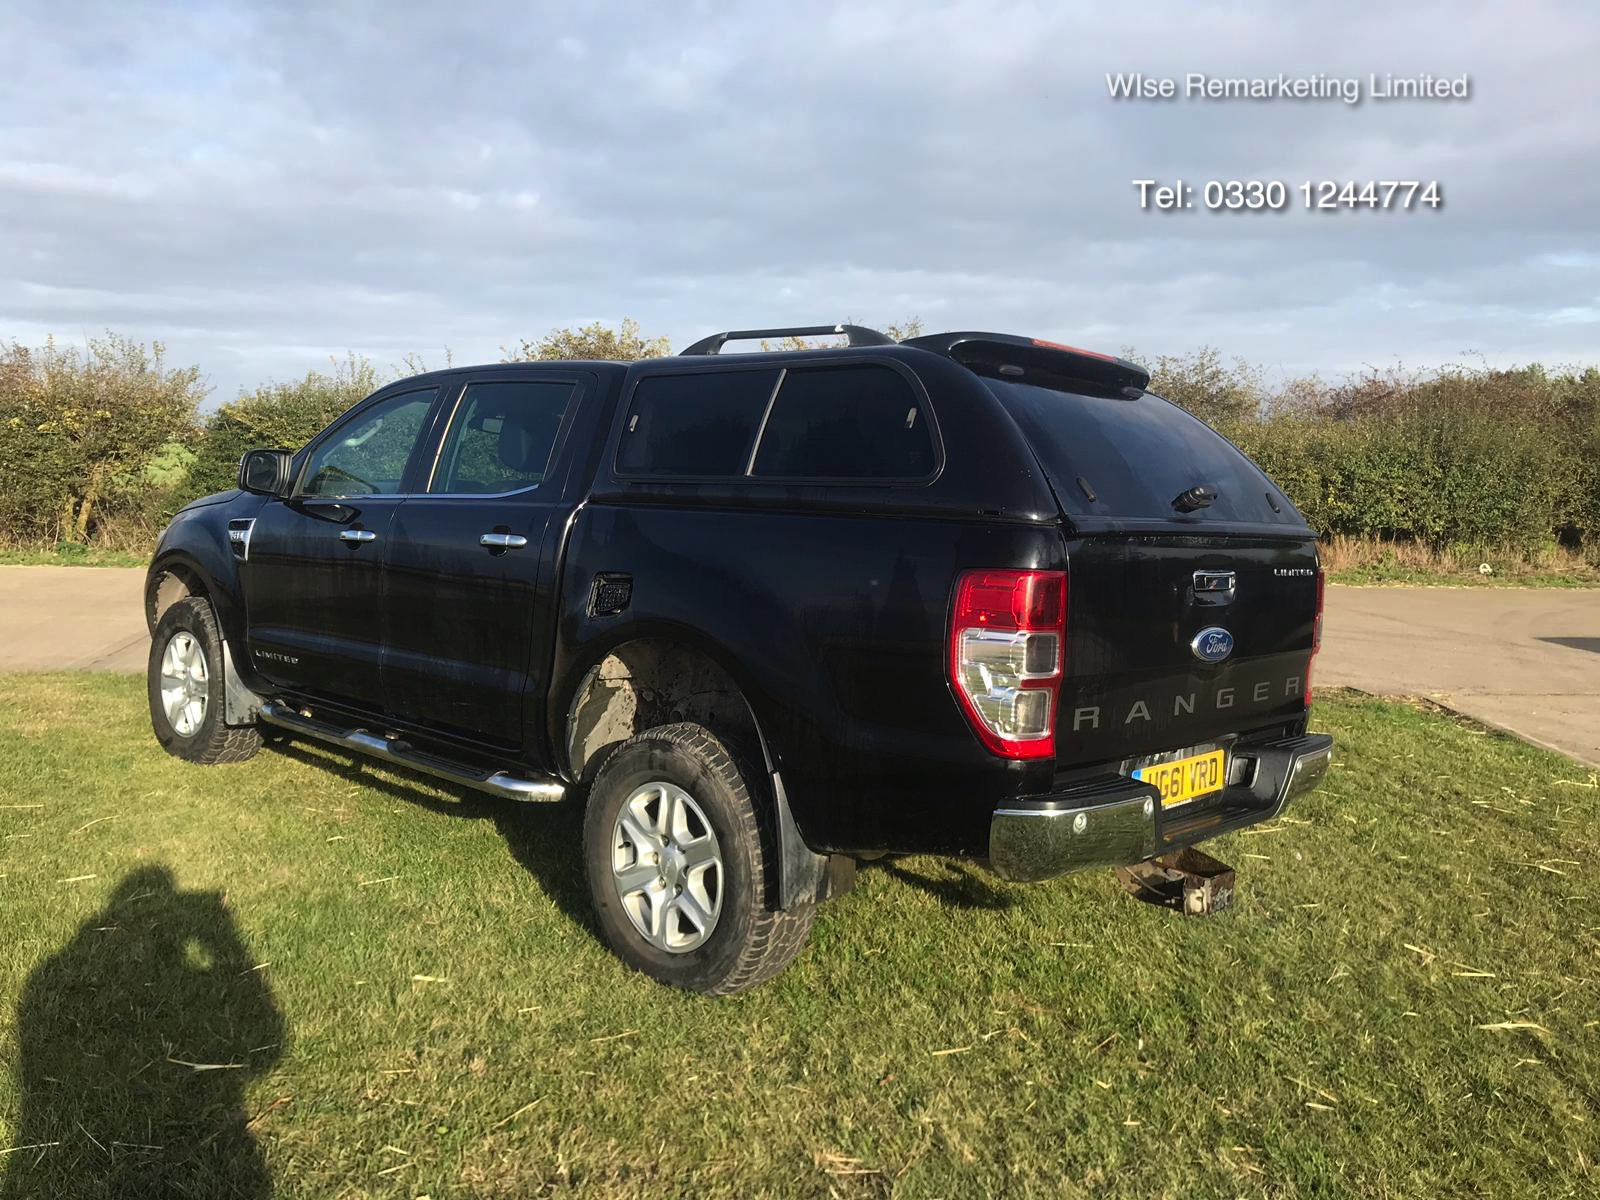 Lot 6a - Ford Ranger Limited **3.2L** Tdci (200 BHP) 4x4 - 2012 Model - Black - Double Cab **RARE**